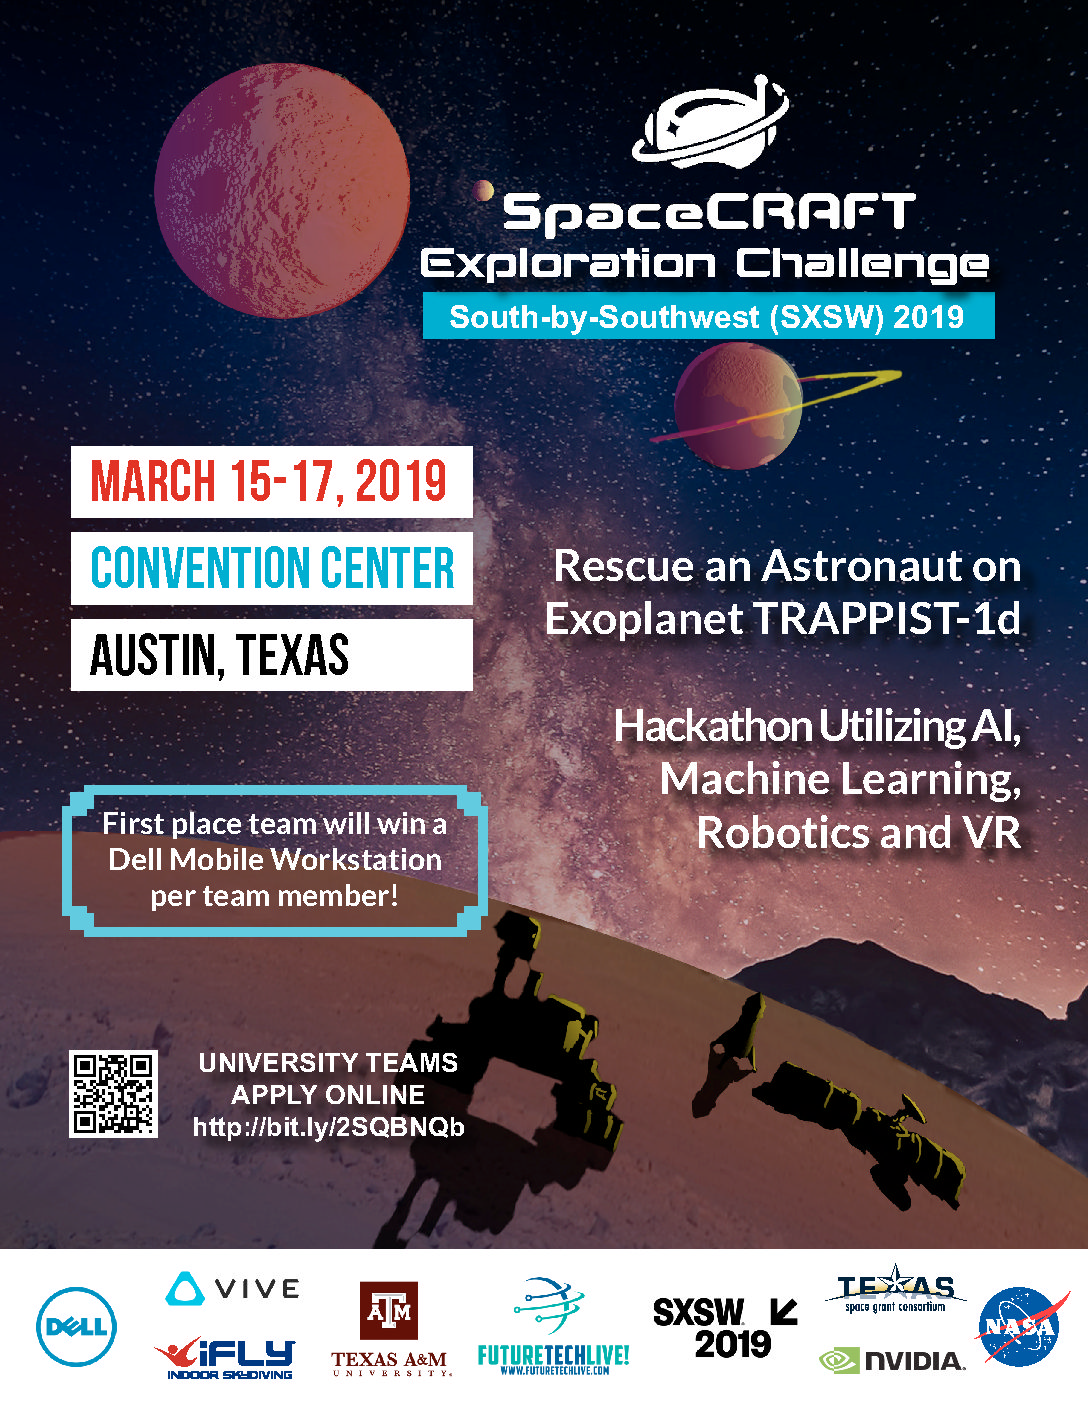 SpaceCRAFT Exploration Challenge at SXSW